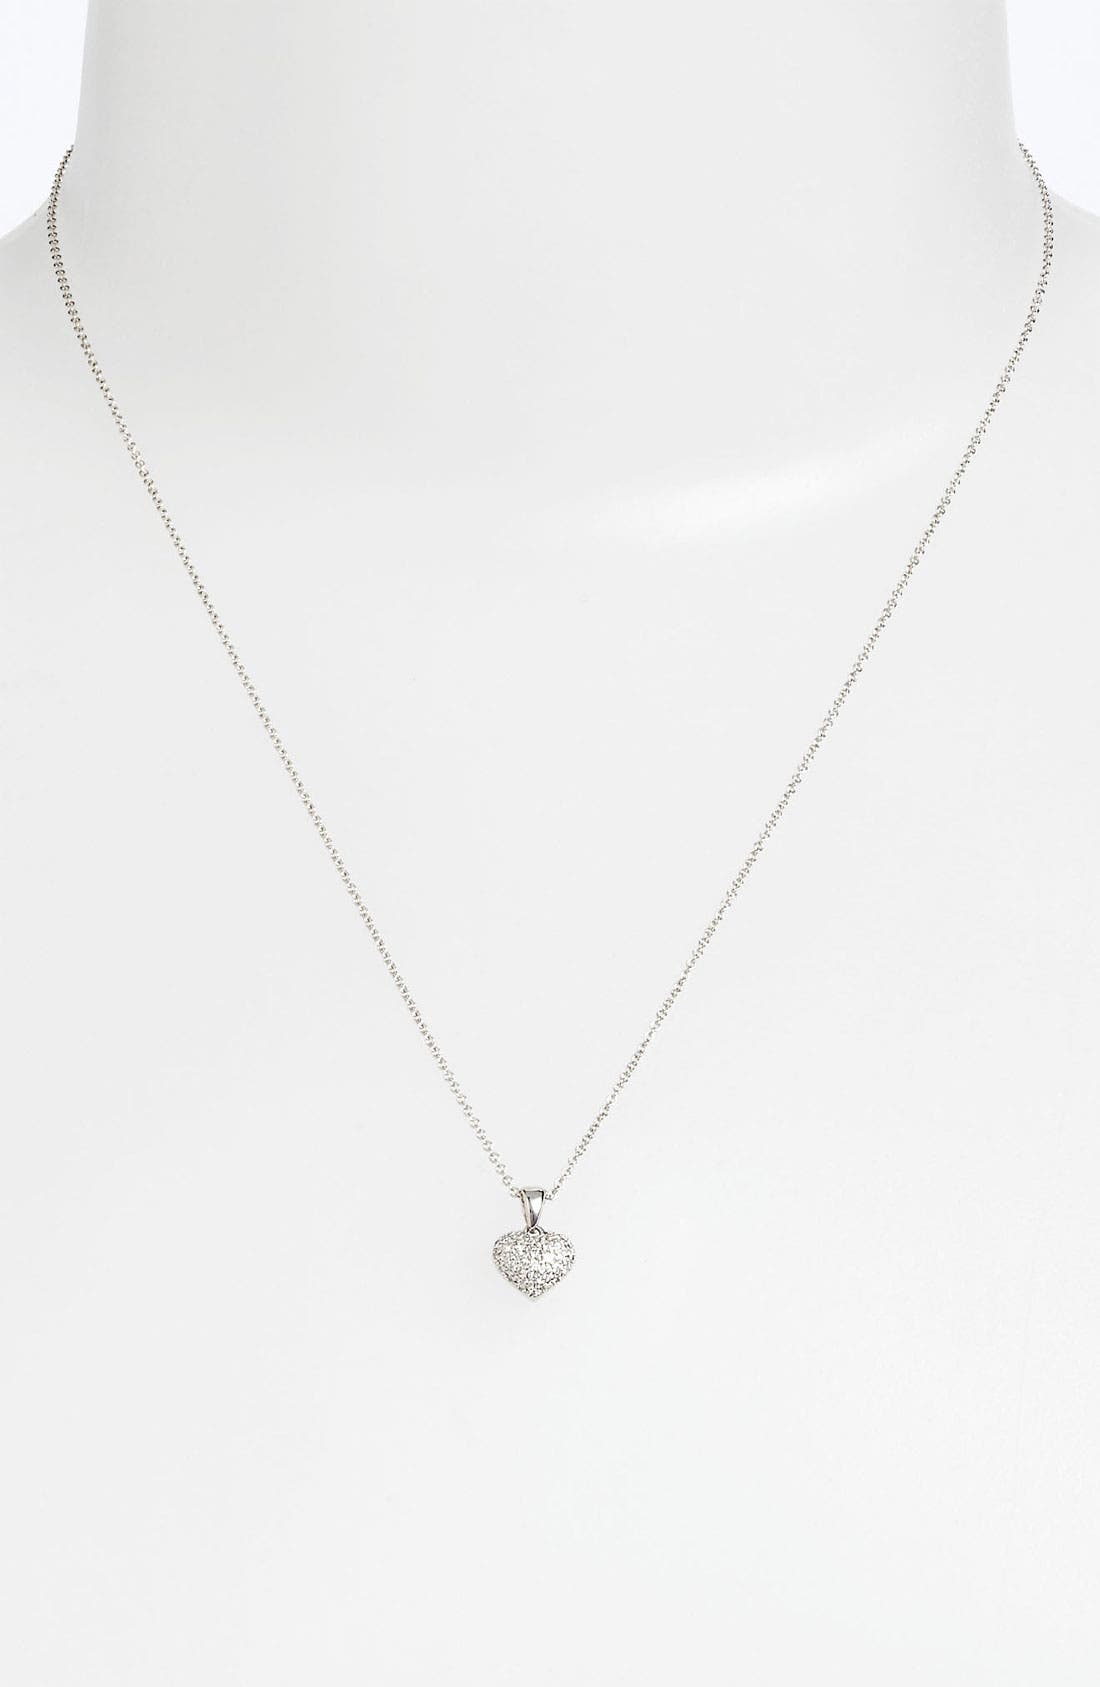 Alternate Image 1 Selected - Bony Levy Pavé Diamond Heart Necklace (Nordstrom Exclusive)